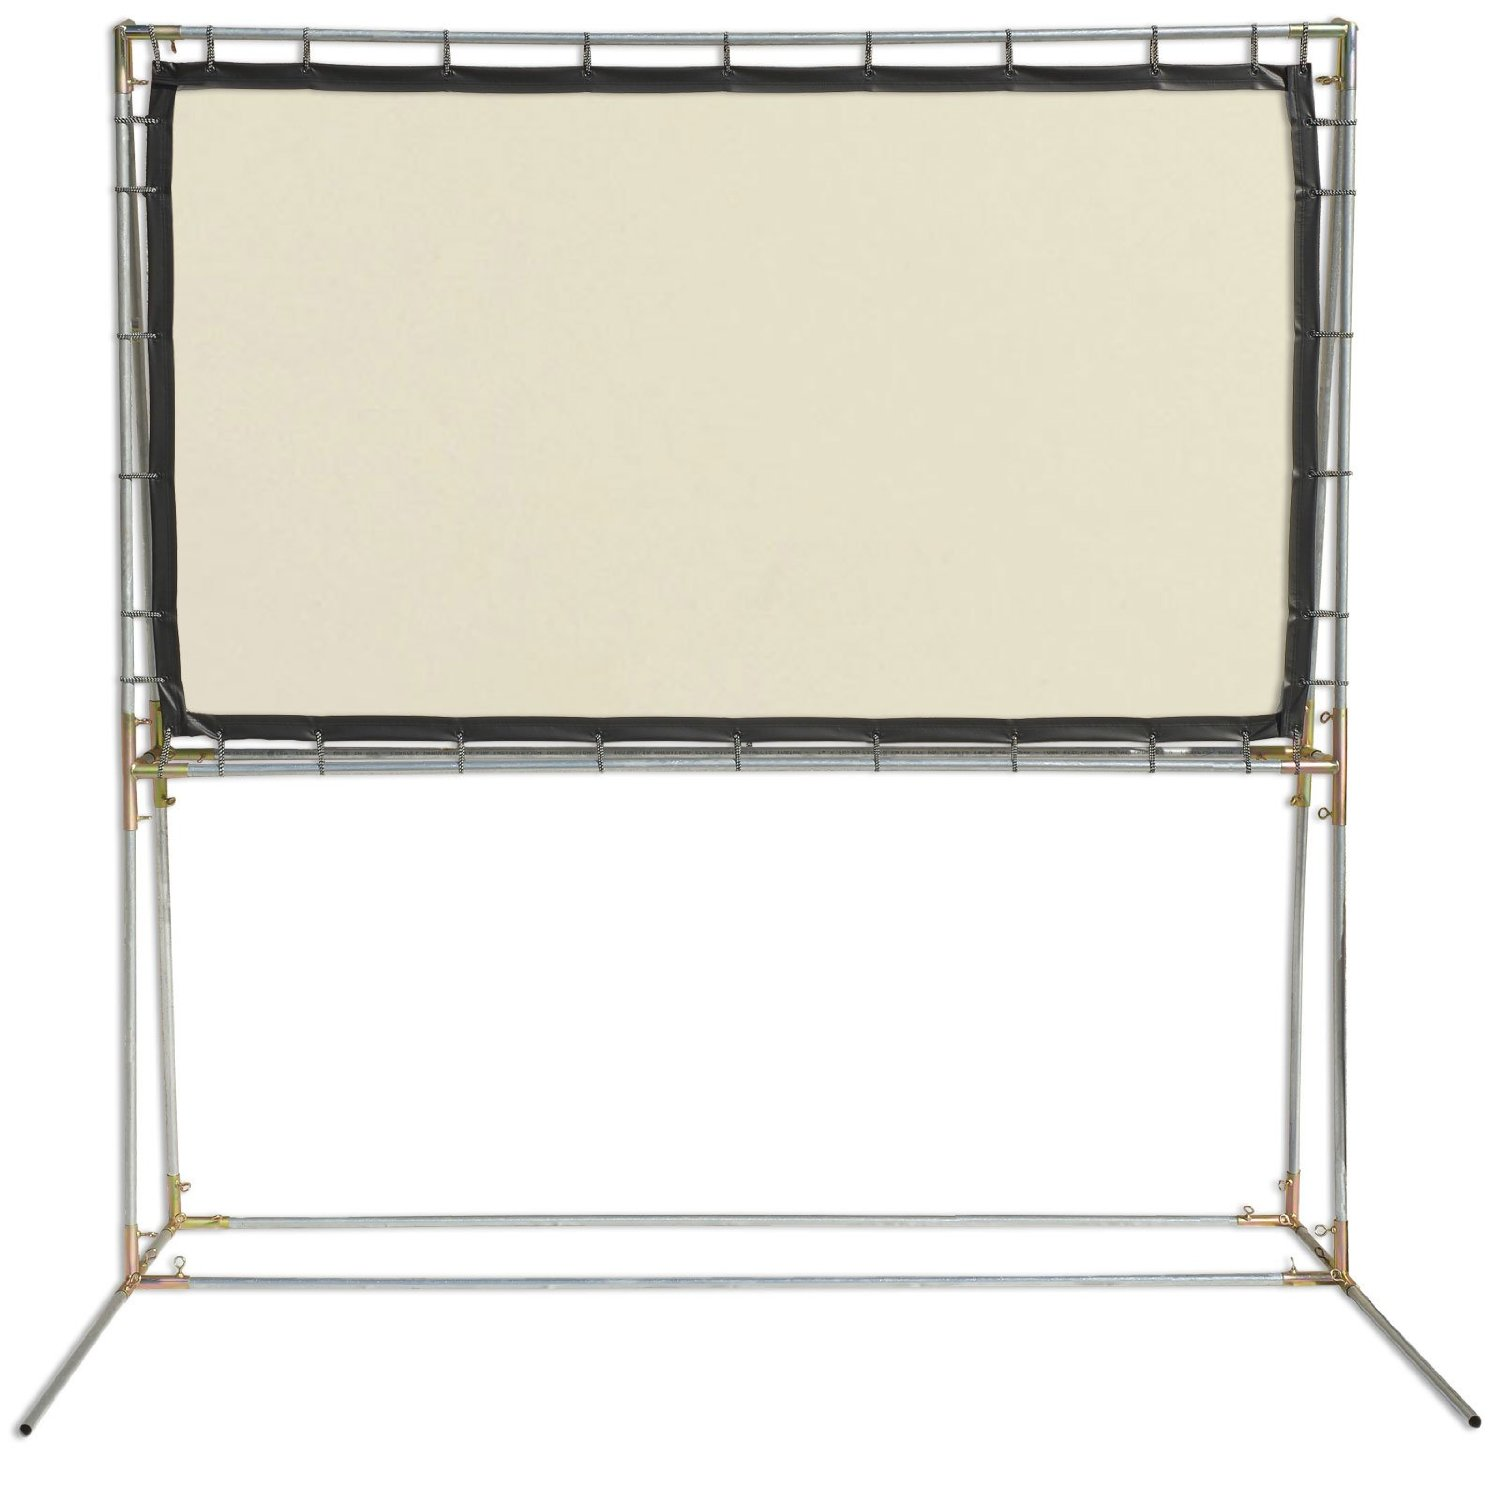 Carl's White Rear Projection Screen Film (16:9   5x9-Ft   120